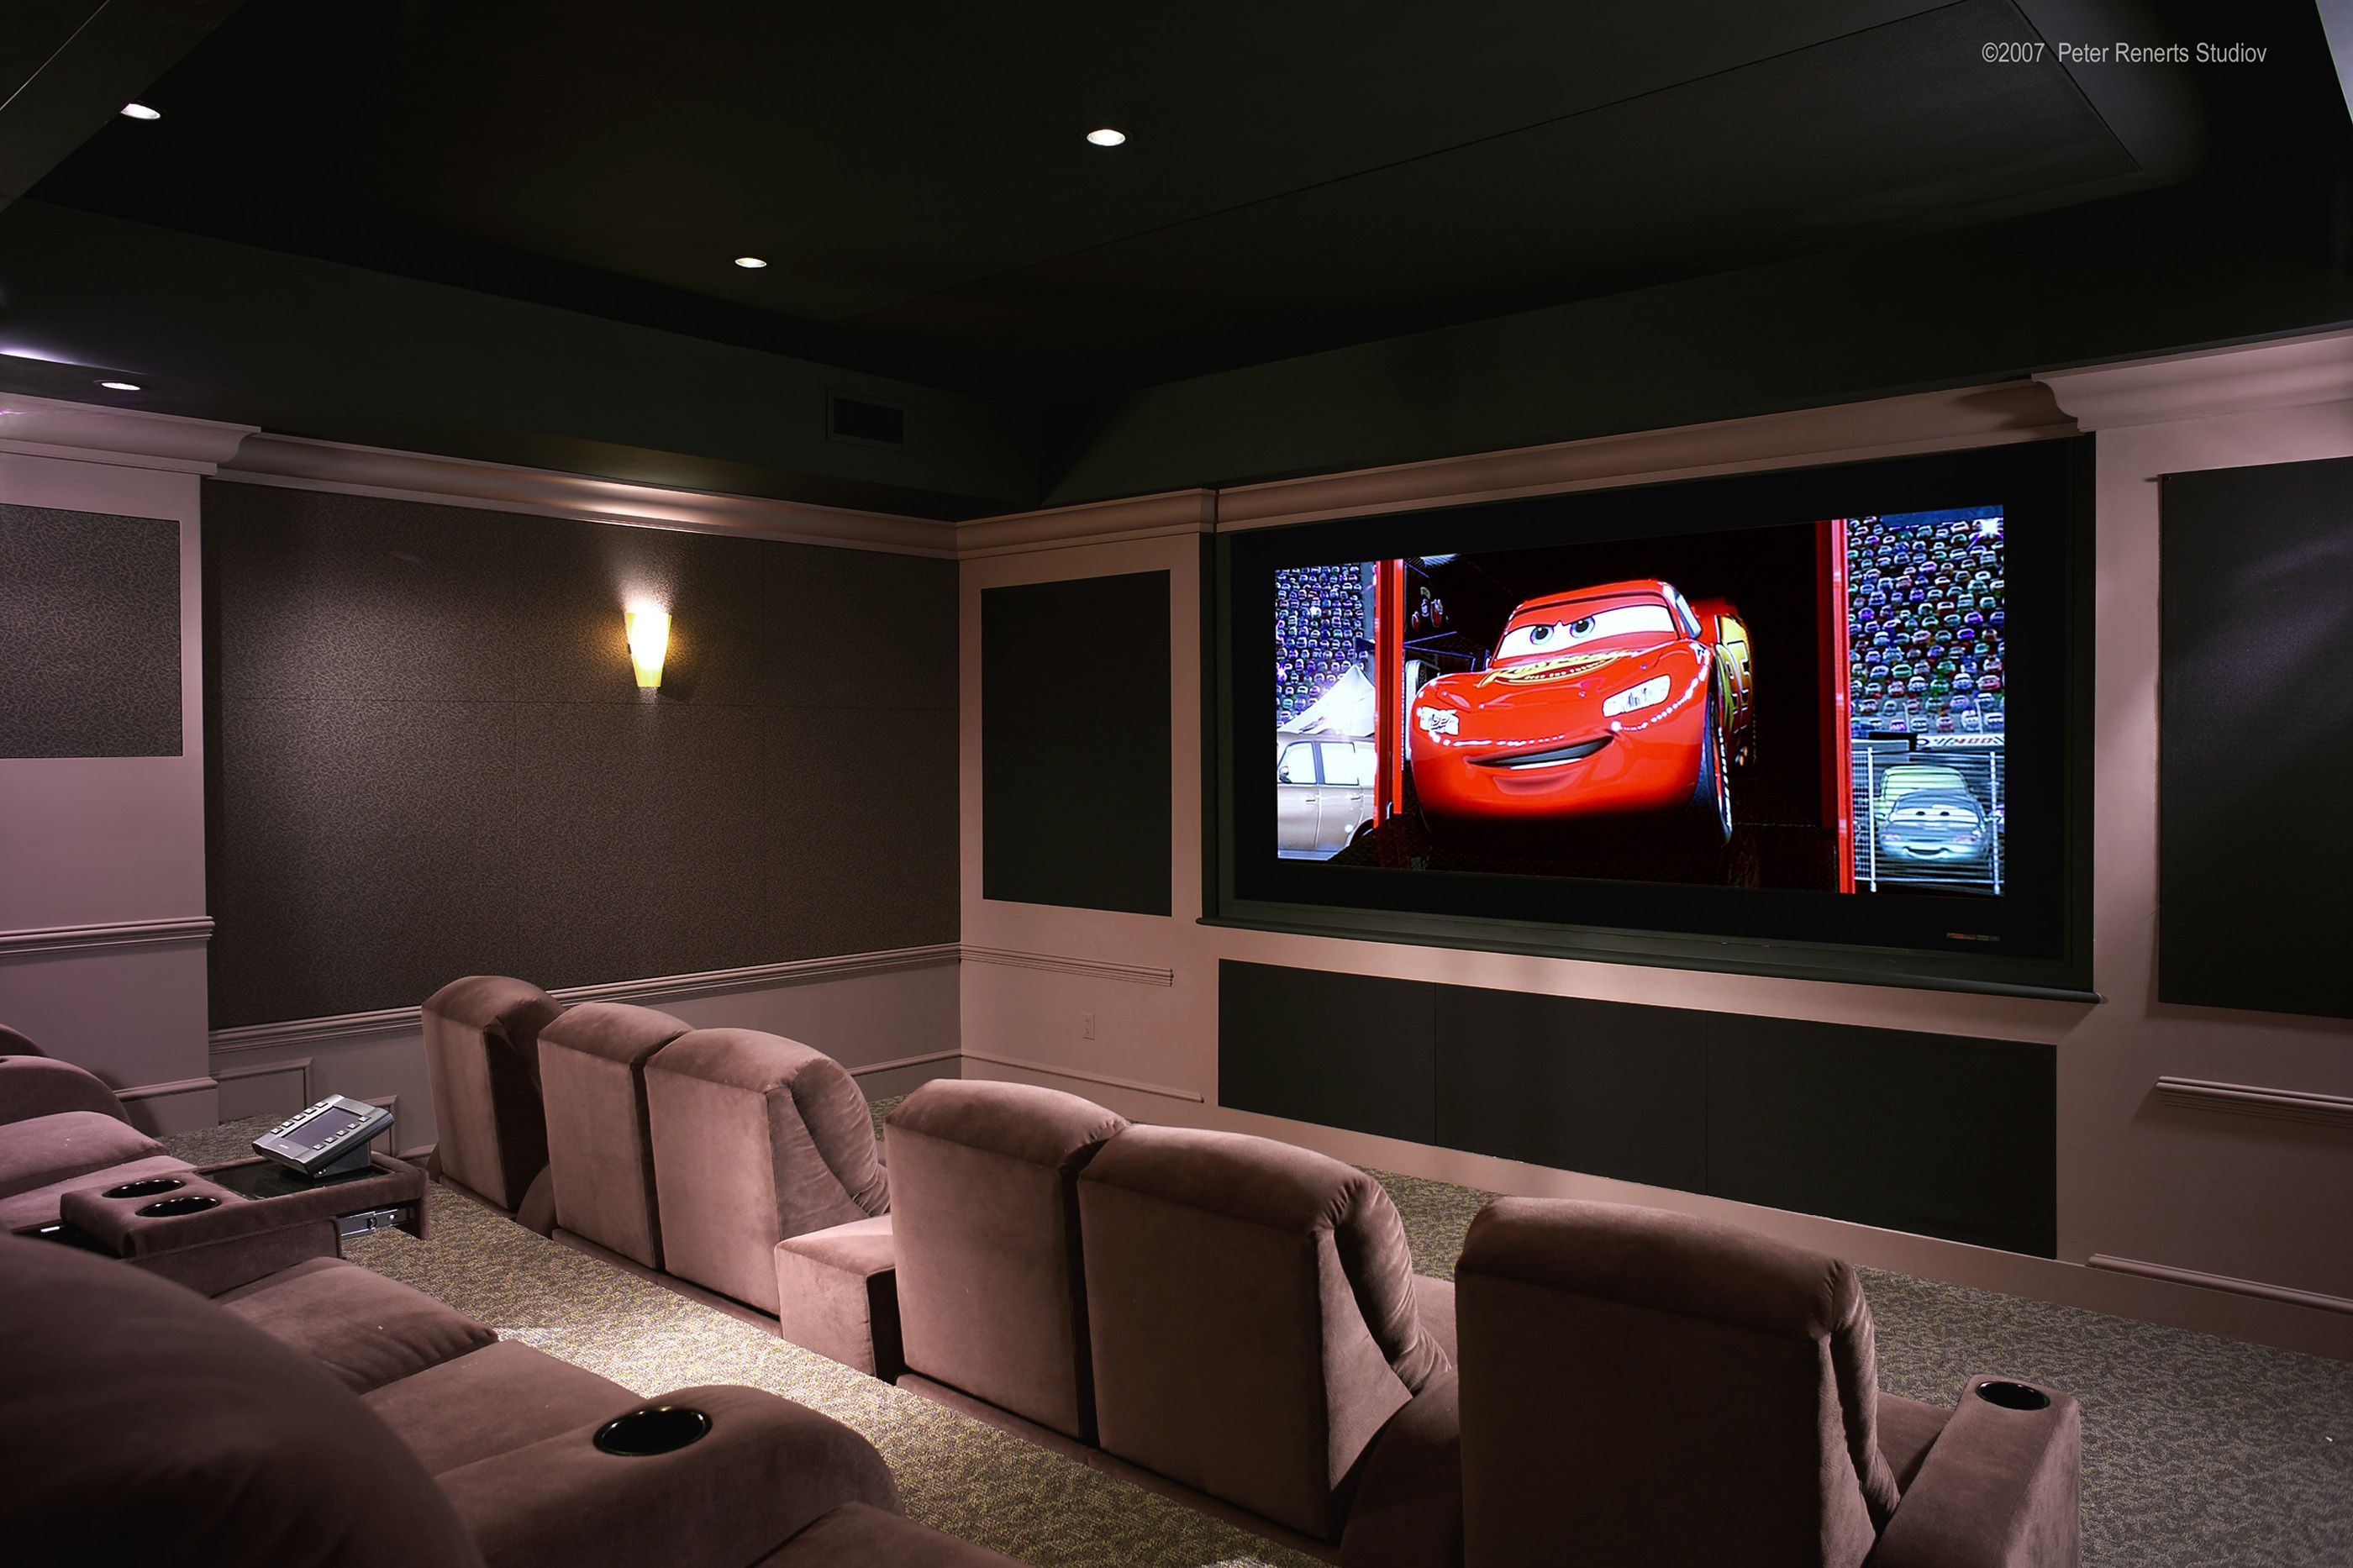 Best Images About Home Theatre Ideas On Pinterest - Designing home theater